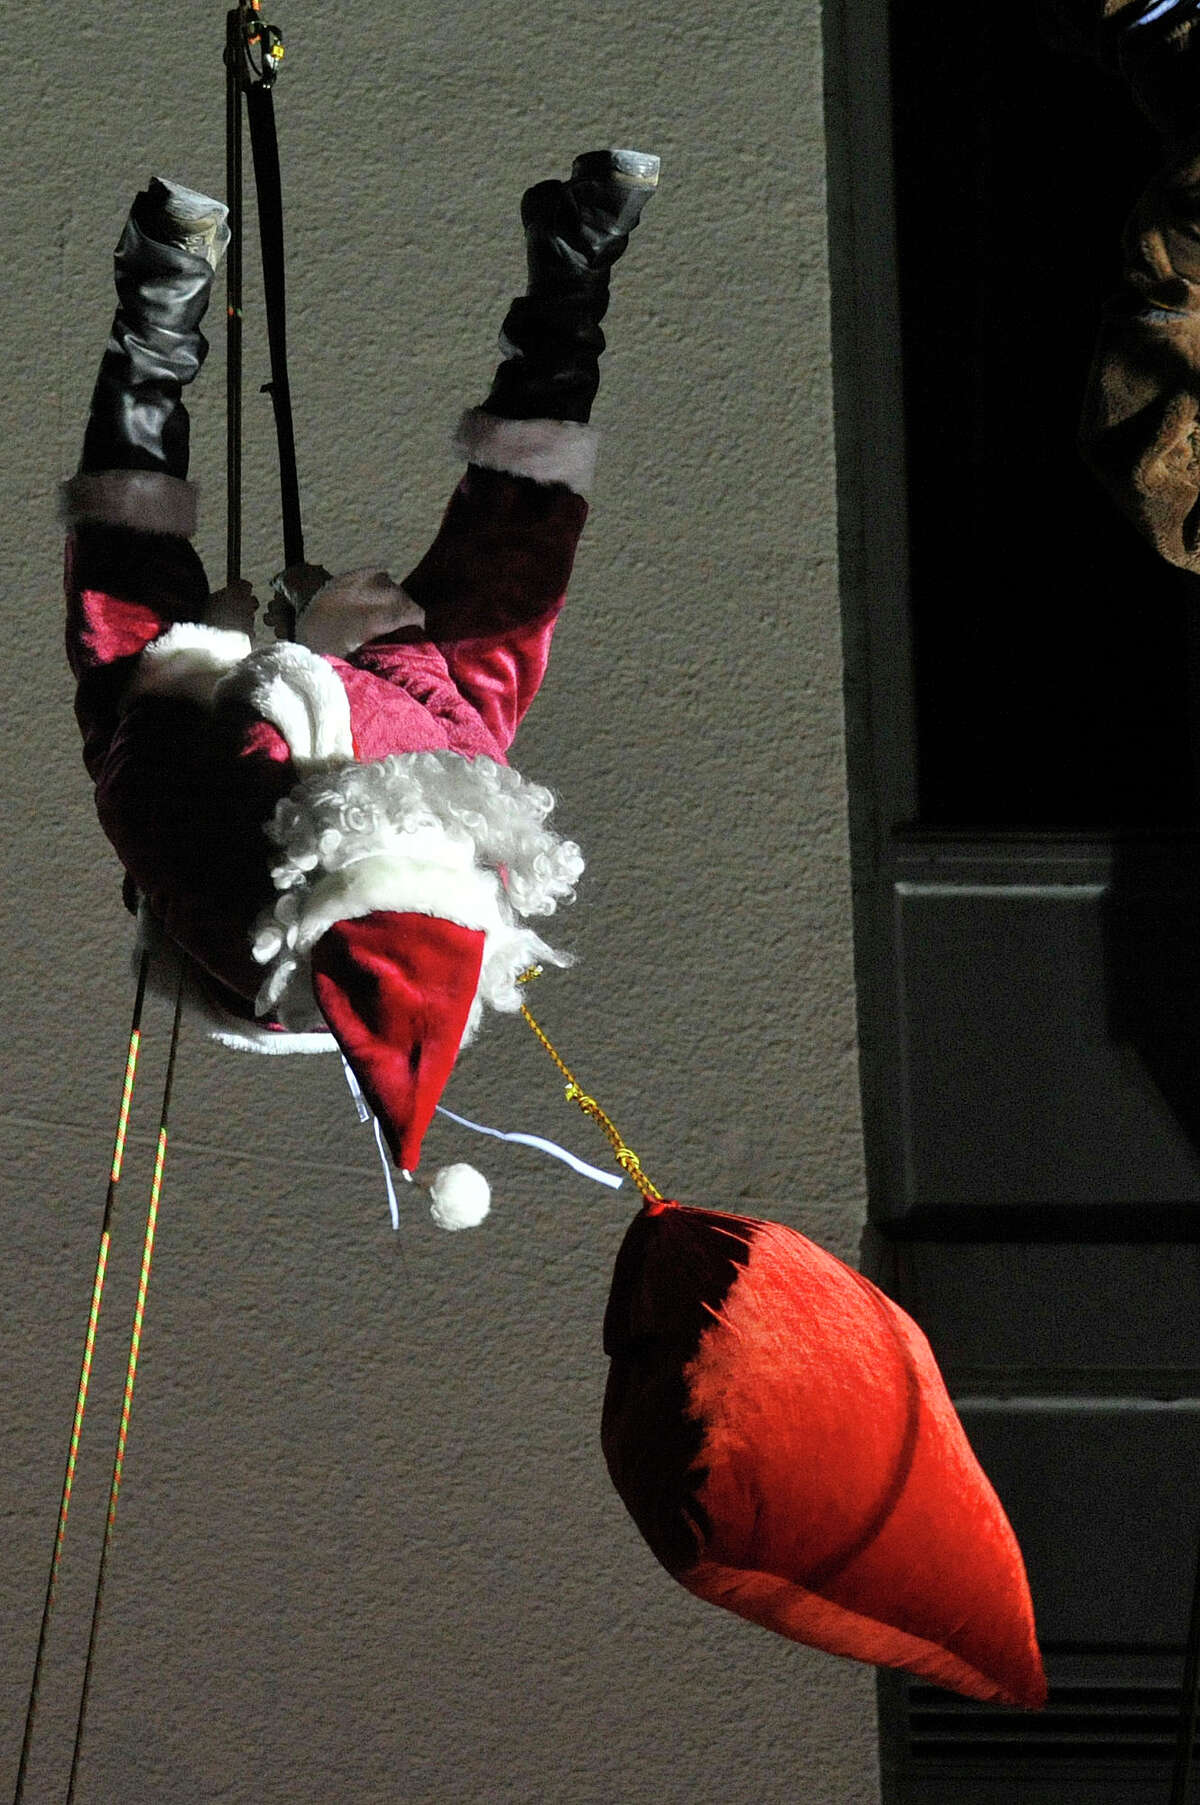 Santa, played by Brian VanOrsdel, hangs upside-down while rappeling down the Landmark Tower during the Heights and Lignts Rappel and Tree Lighting event in downtown Stamford, Conn., on Sunday, Dec. 7, 2014.